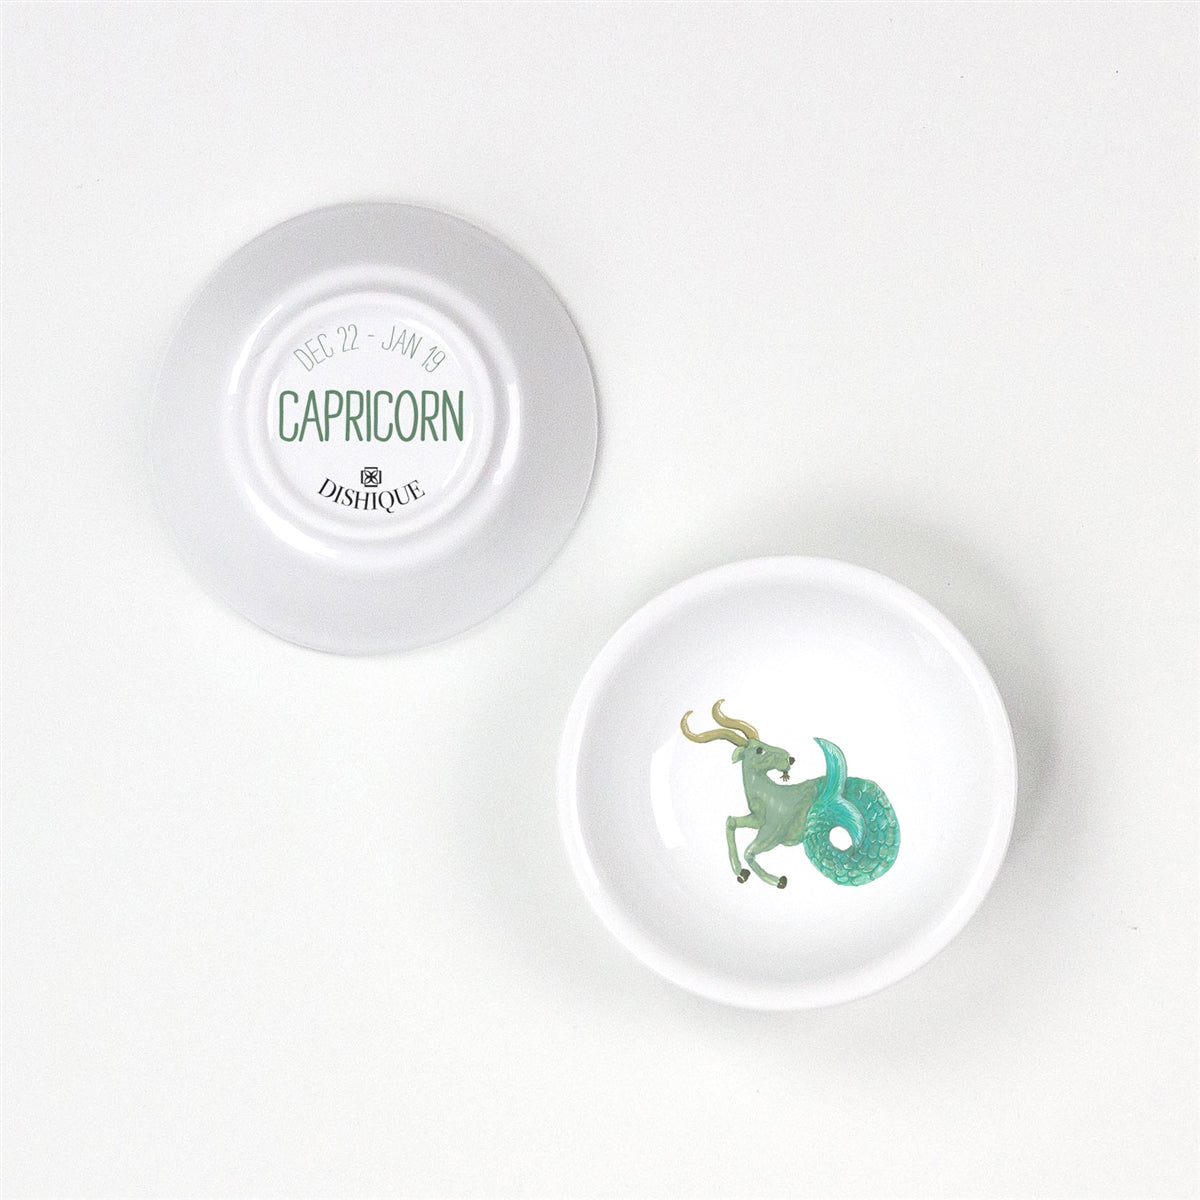 Capricorn Ring Dish - Zodiac Gifts